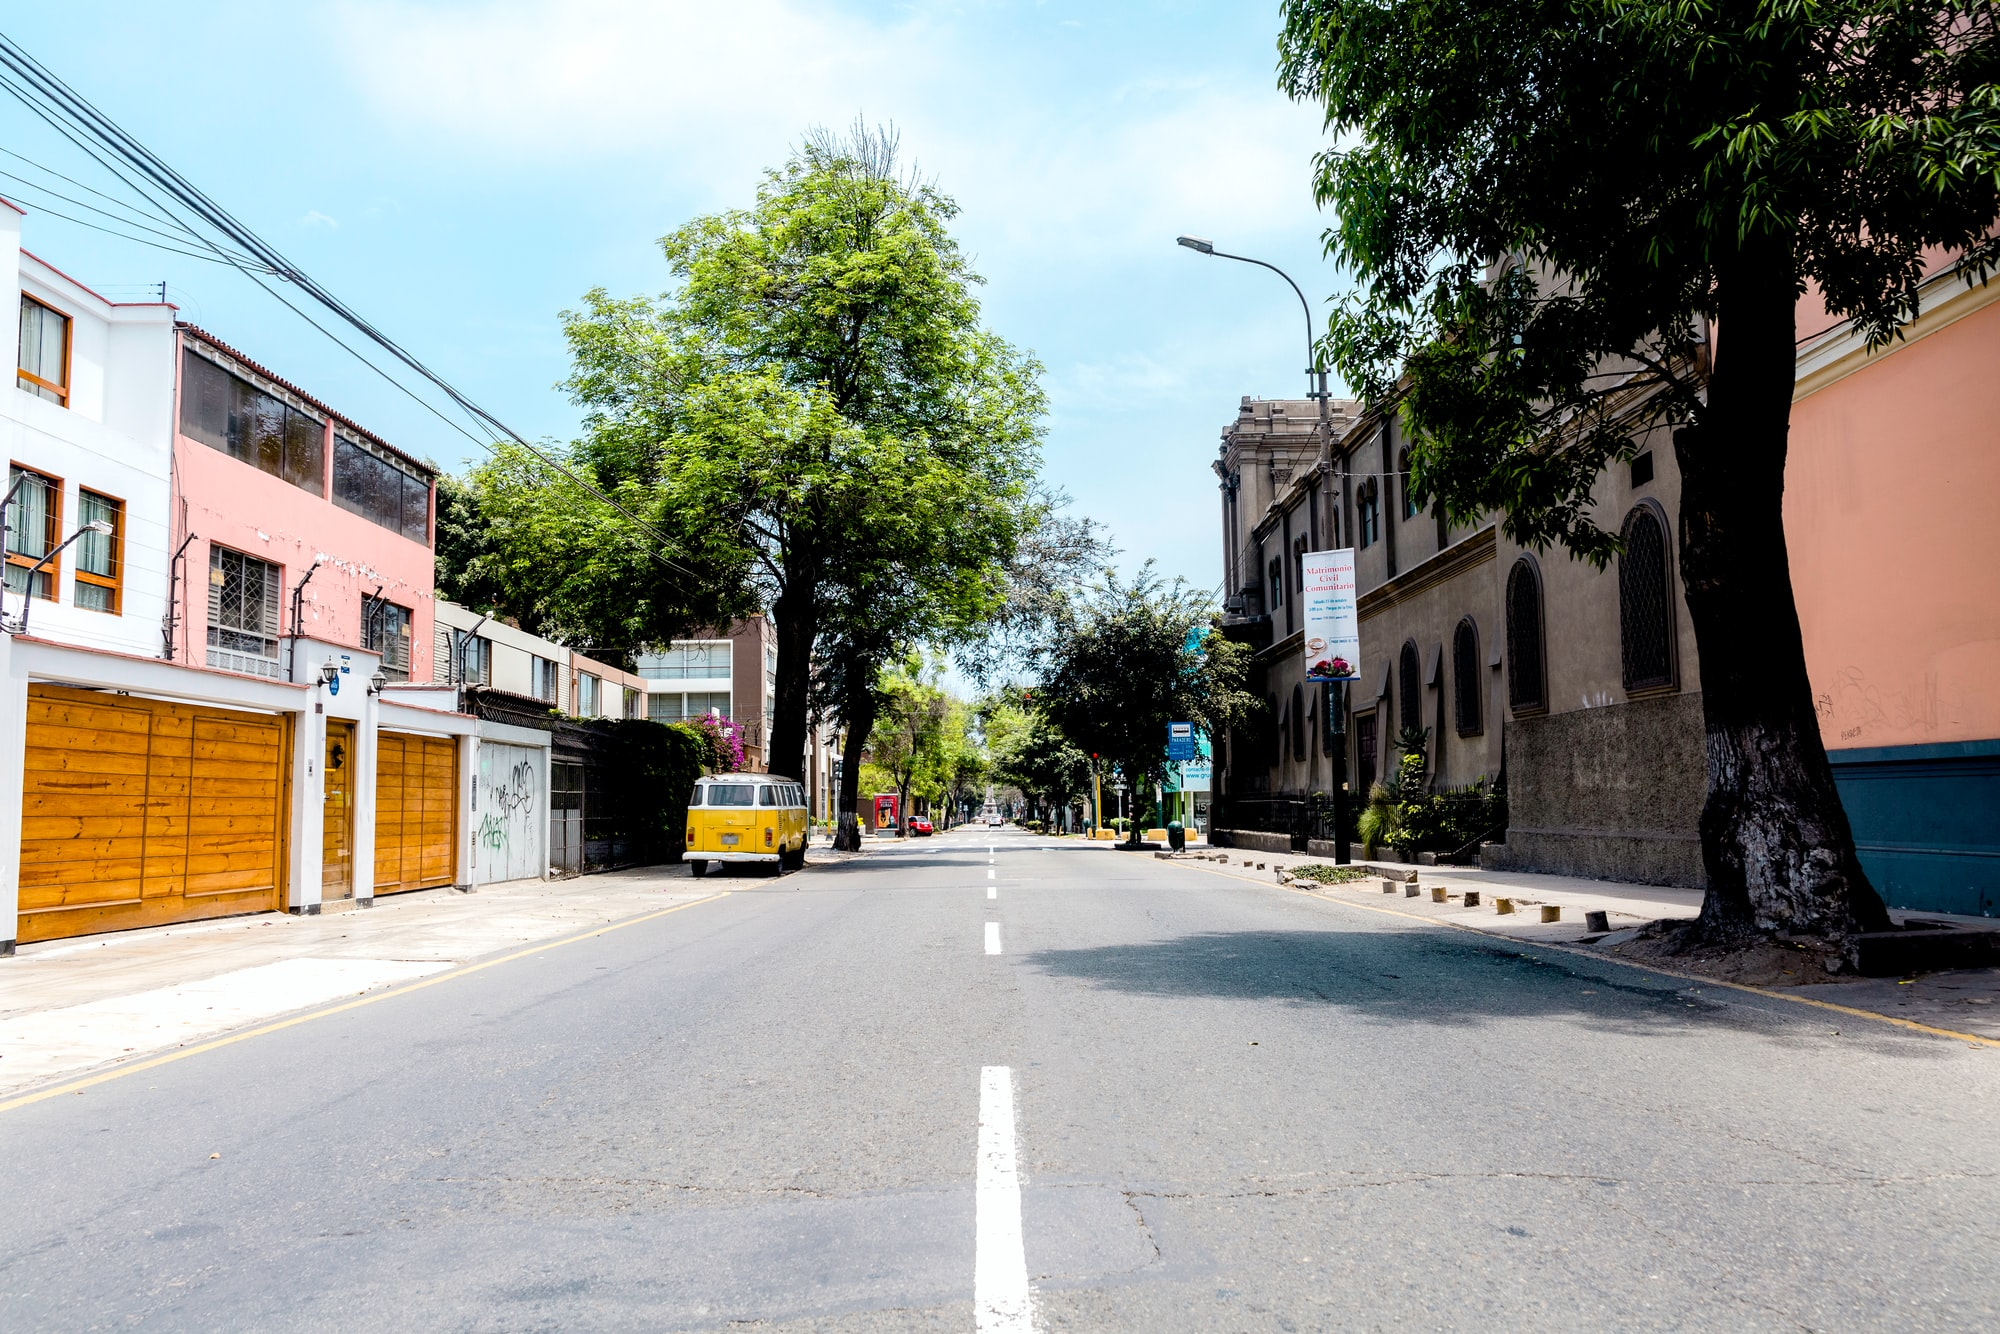 Sunday noon, while all people where participating on the national census, streets look empty and abandoned like it was the first day people left. This is a shot of a hipster neighbourhood Barranco whit -almost- no humans around in the shot.